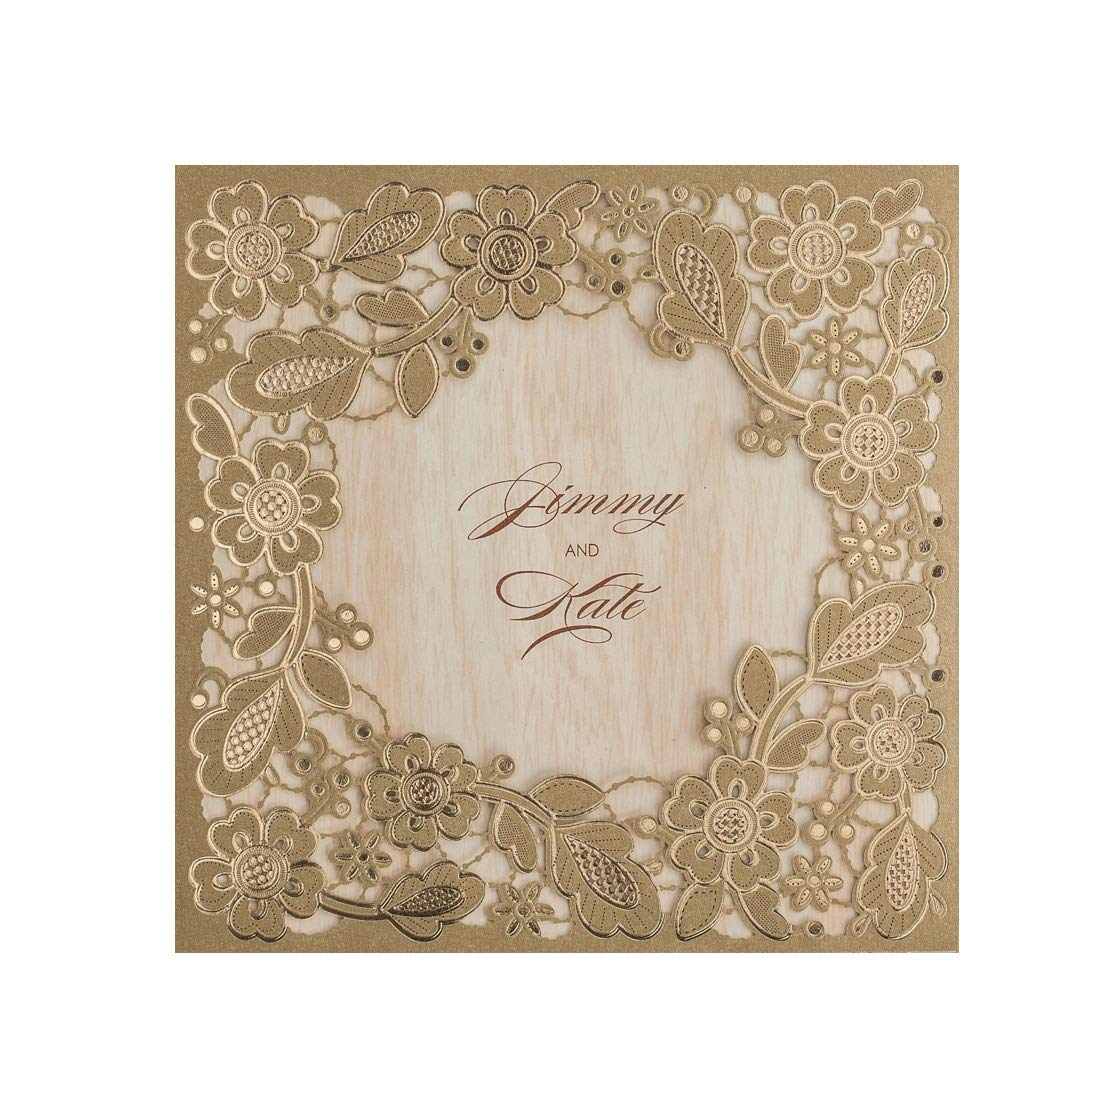 WISHMADE 20 Gold Invitations Cards Laser Cut Floral Wedding Invites Set with envelopes, Stickers